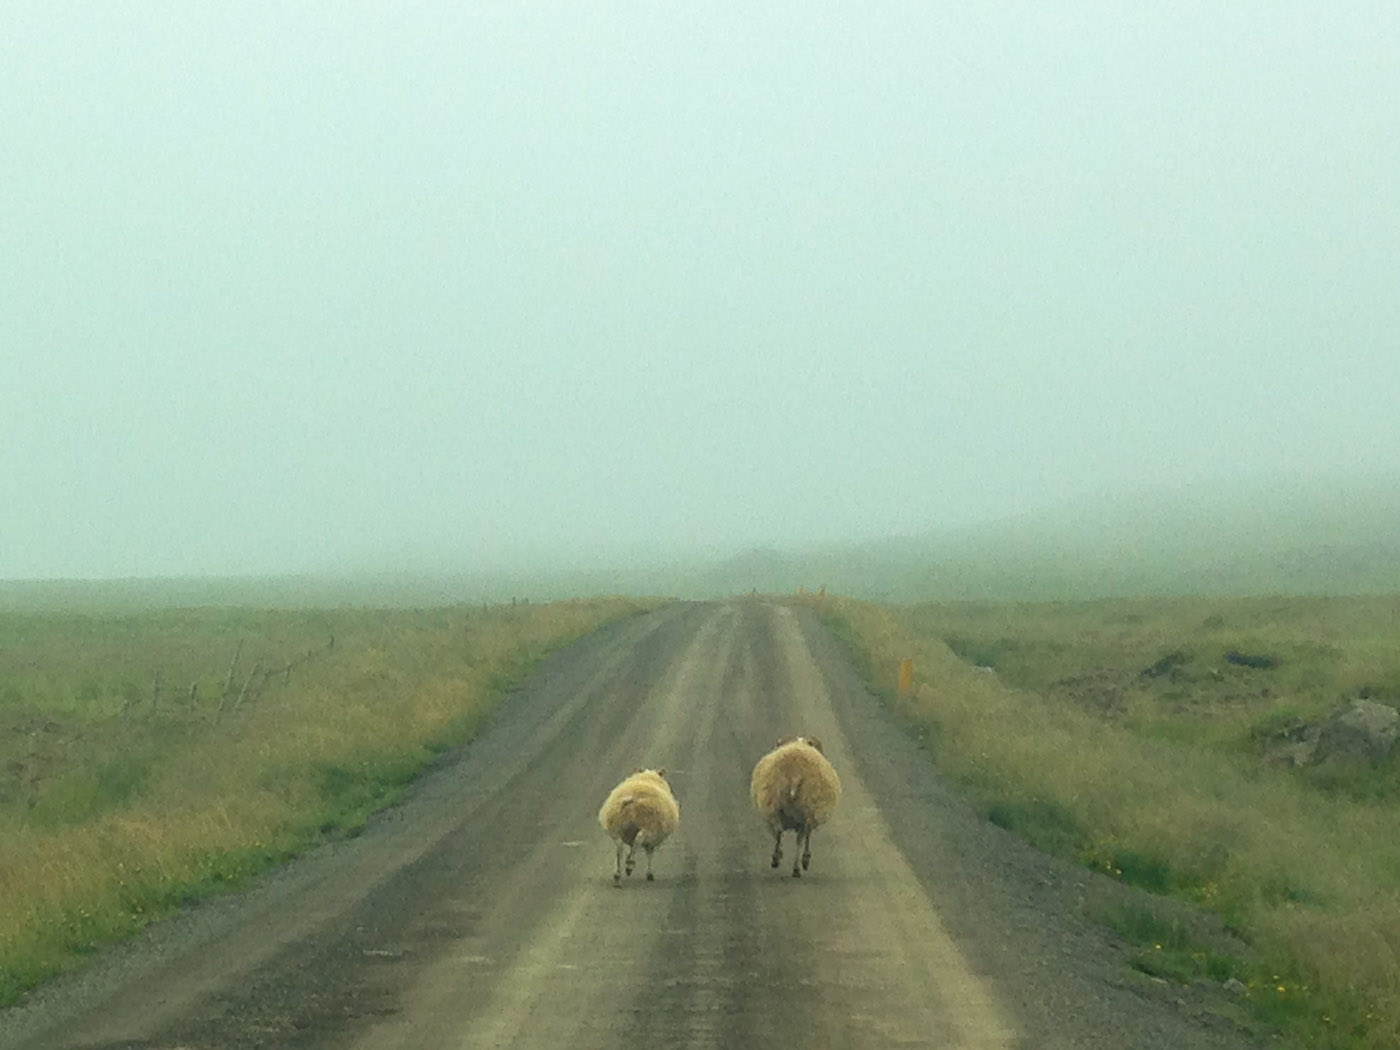 Northern Iceland - Hvammstangi - Svarfaðardalur. On vacation. - Around Vatsnes. VIII. And (running) sheep ... (20 July 2014)